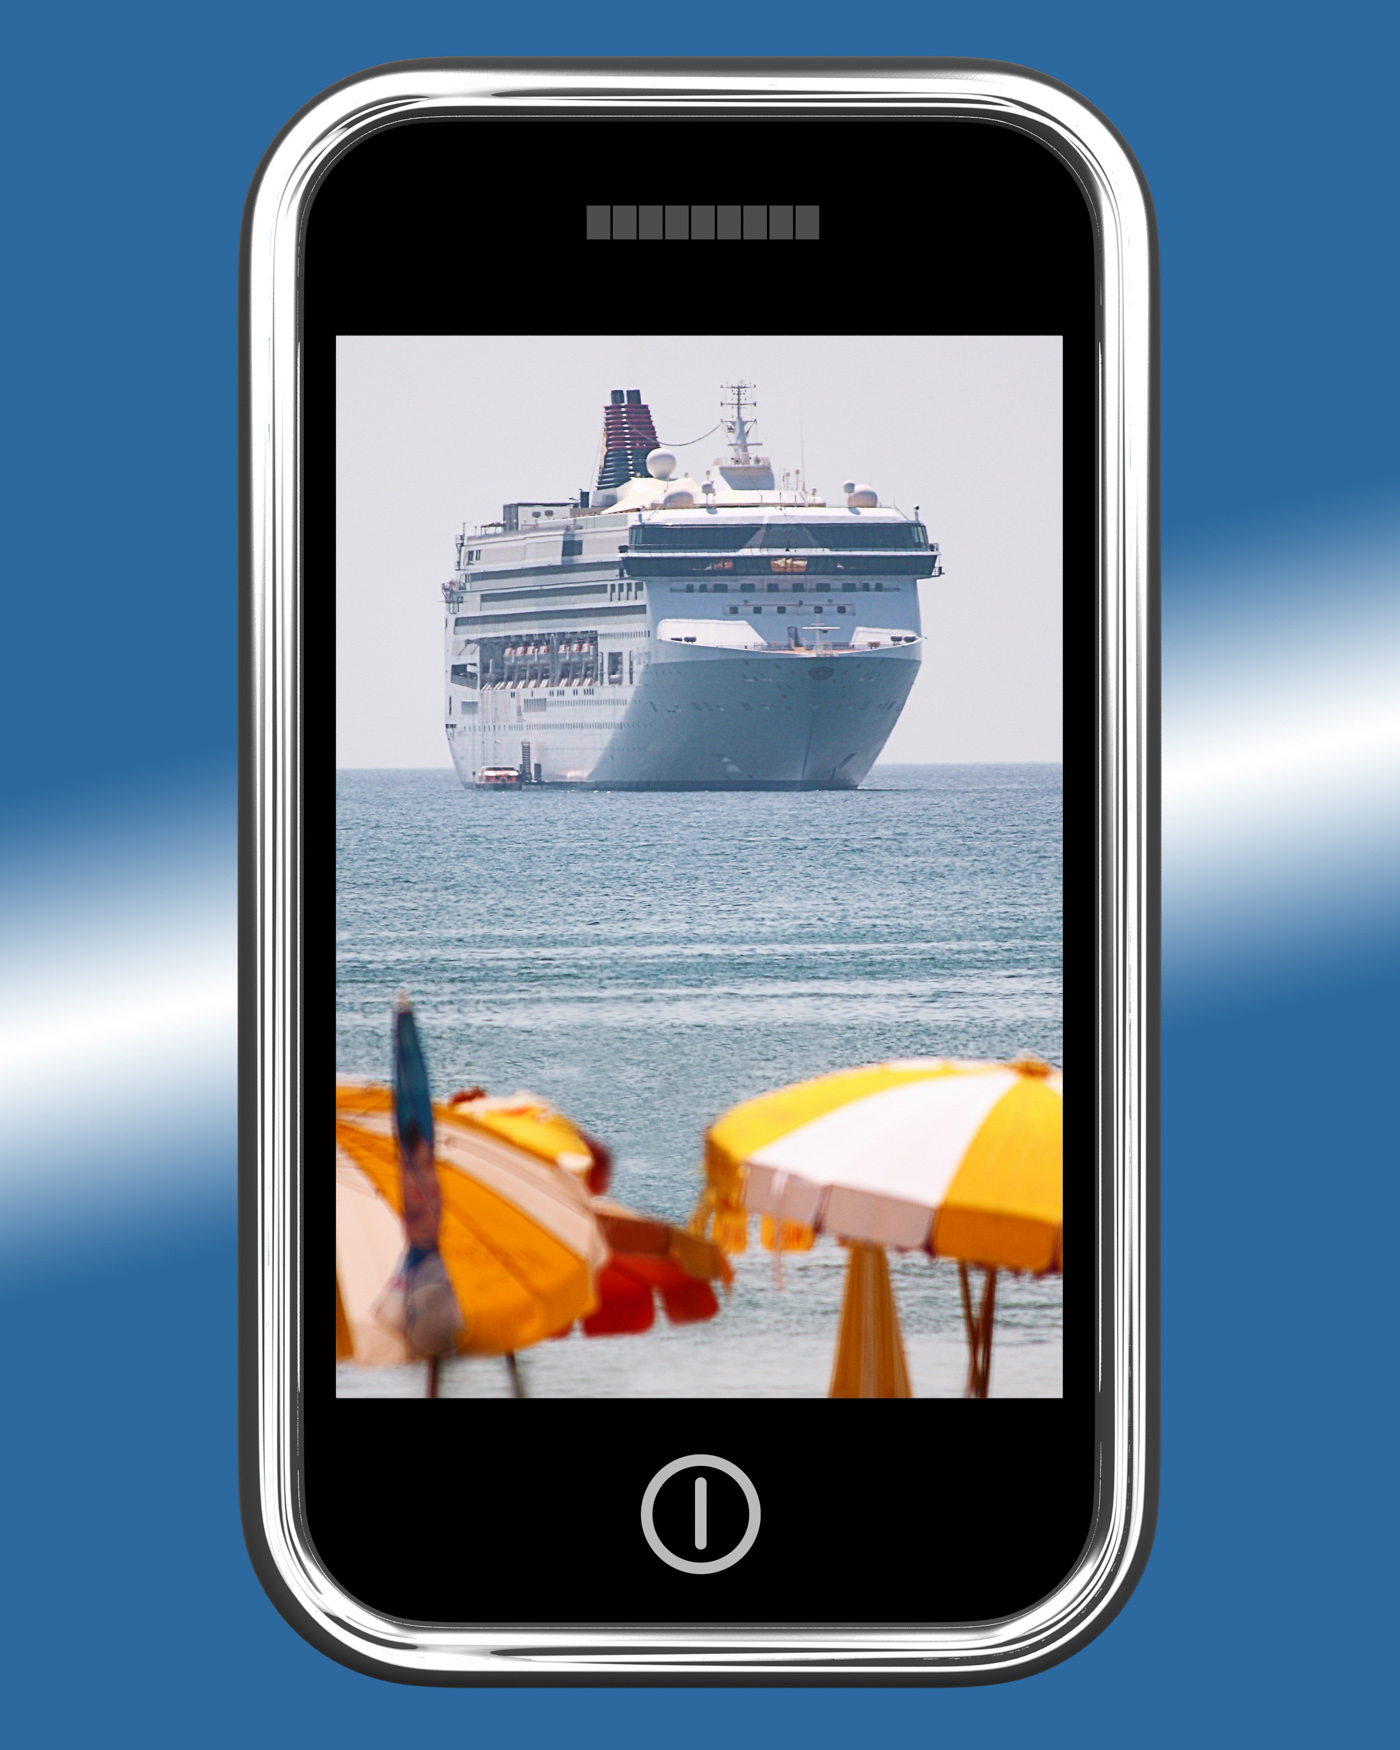 Cruise ship travel picture on mobile phone photo